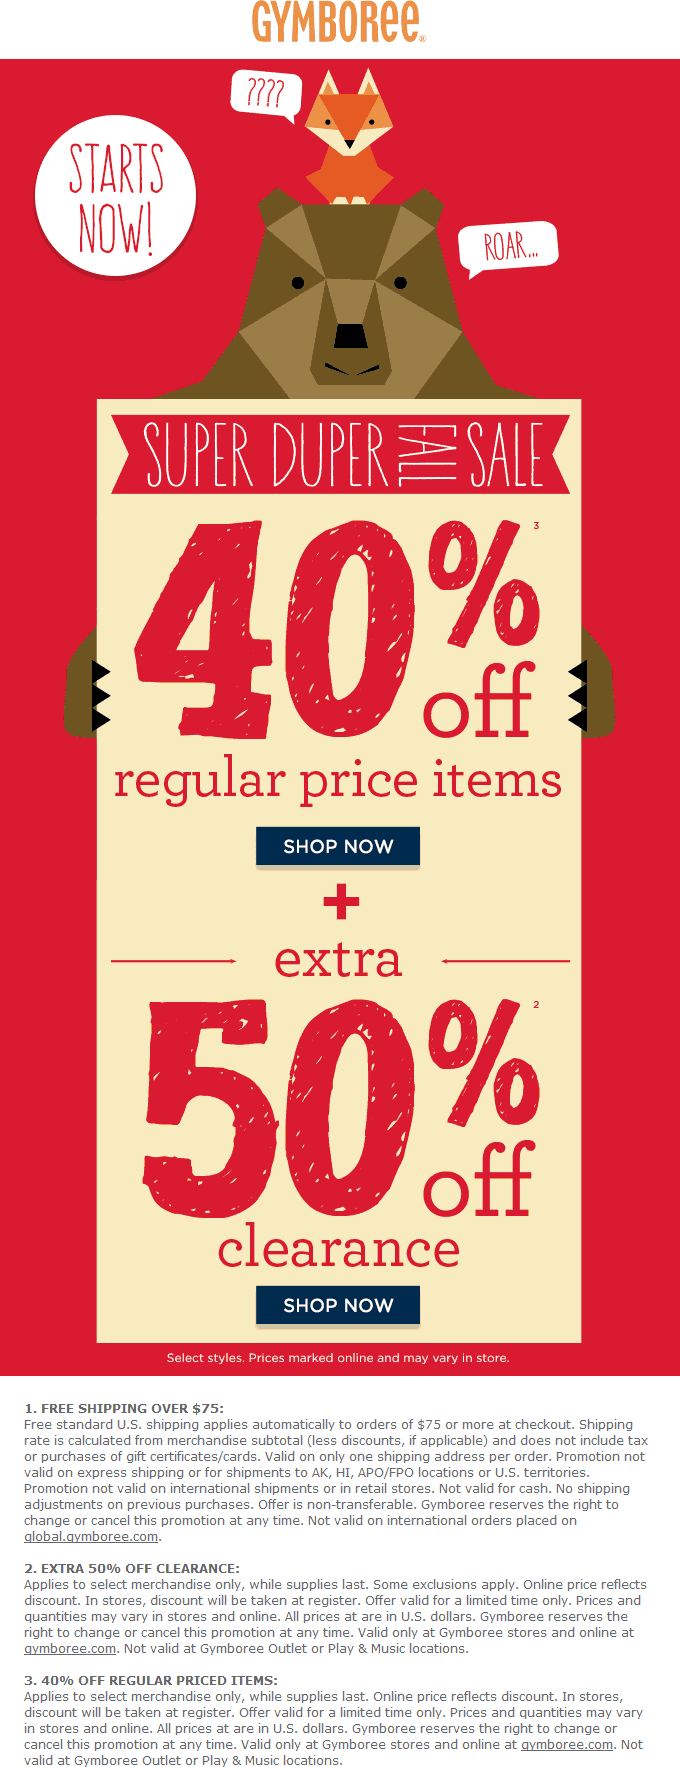 Gymboree.com Promo Coupon 40% off regular & extra 50% off clearance at Gymboree, ditto online